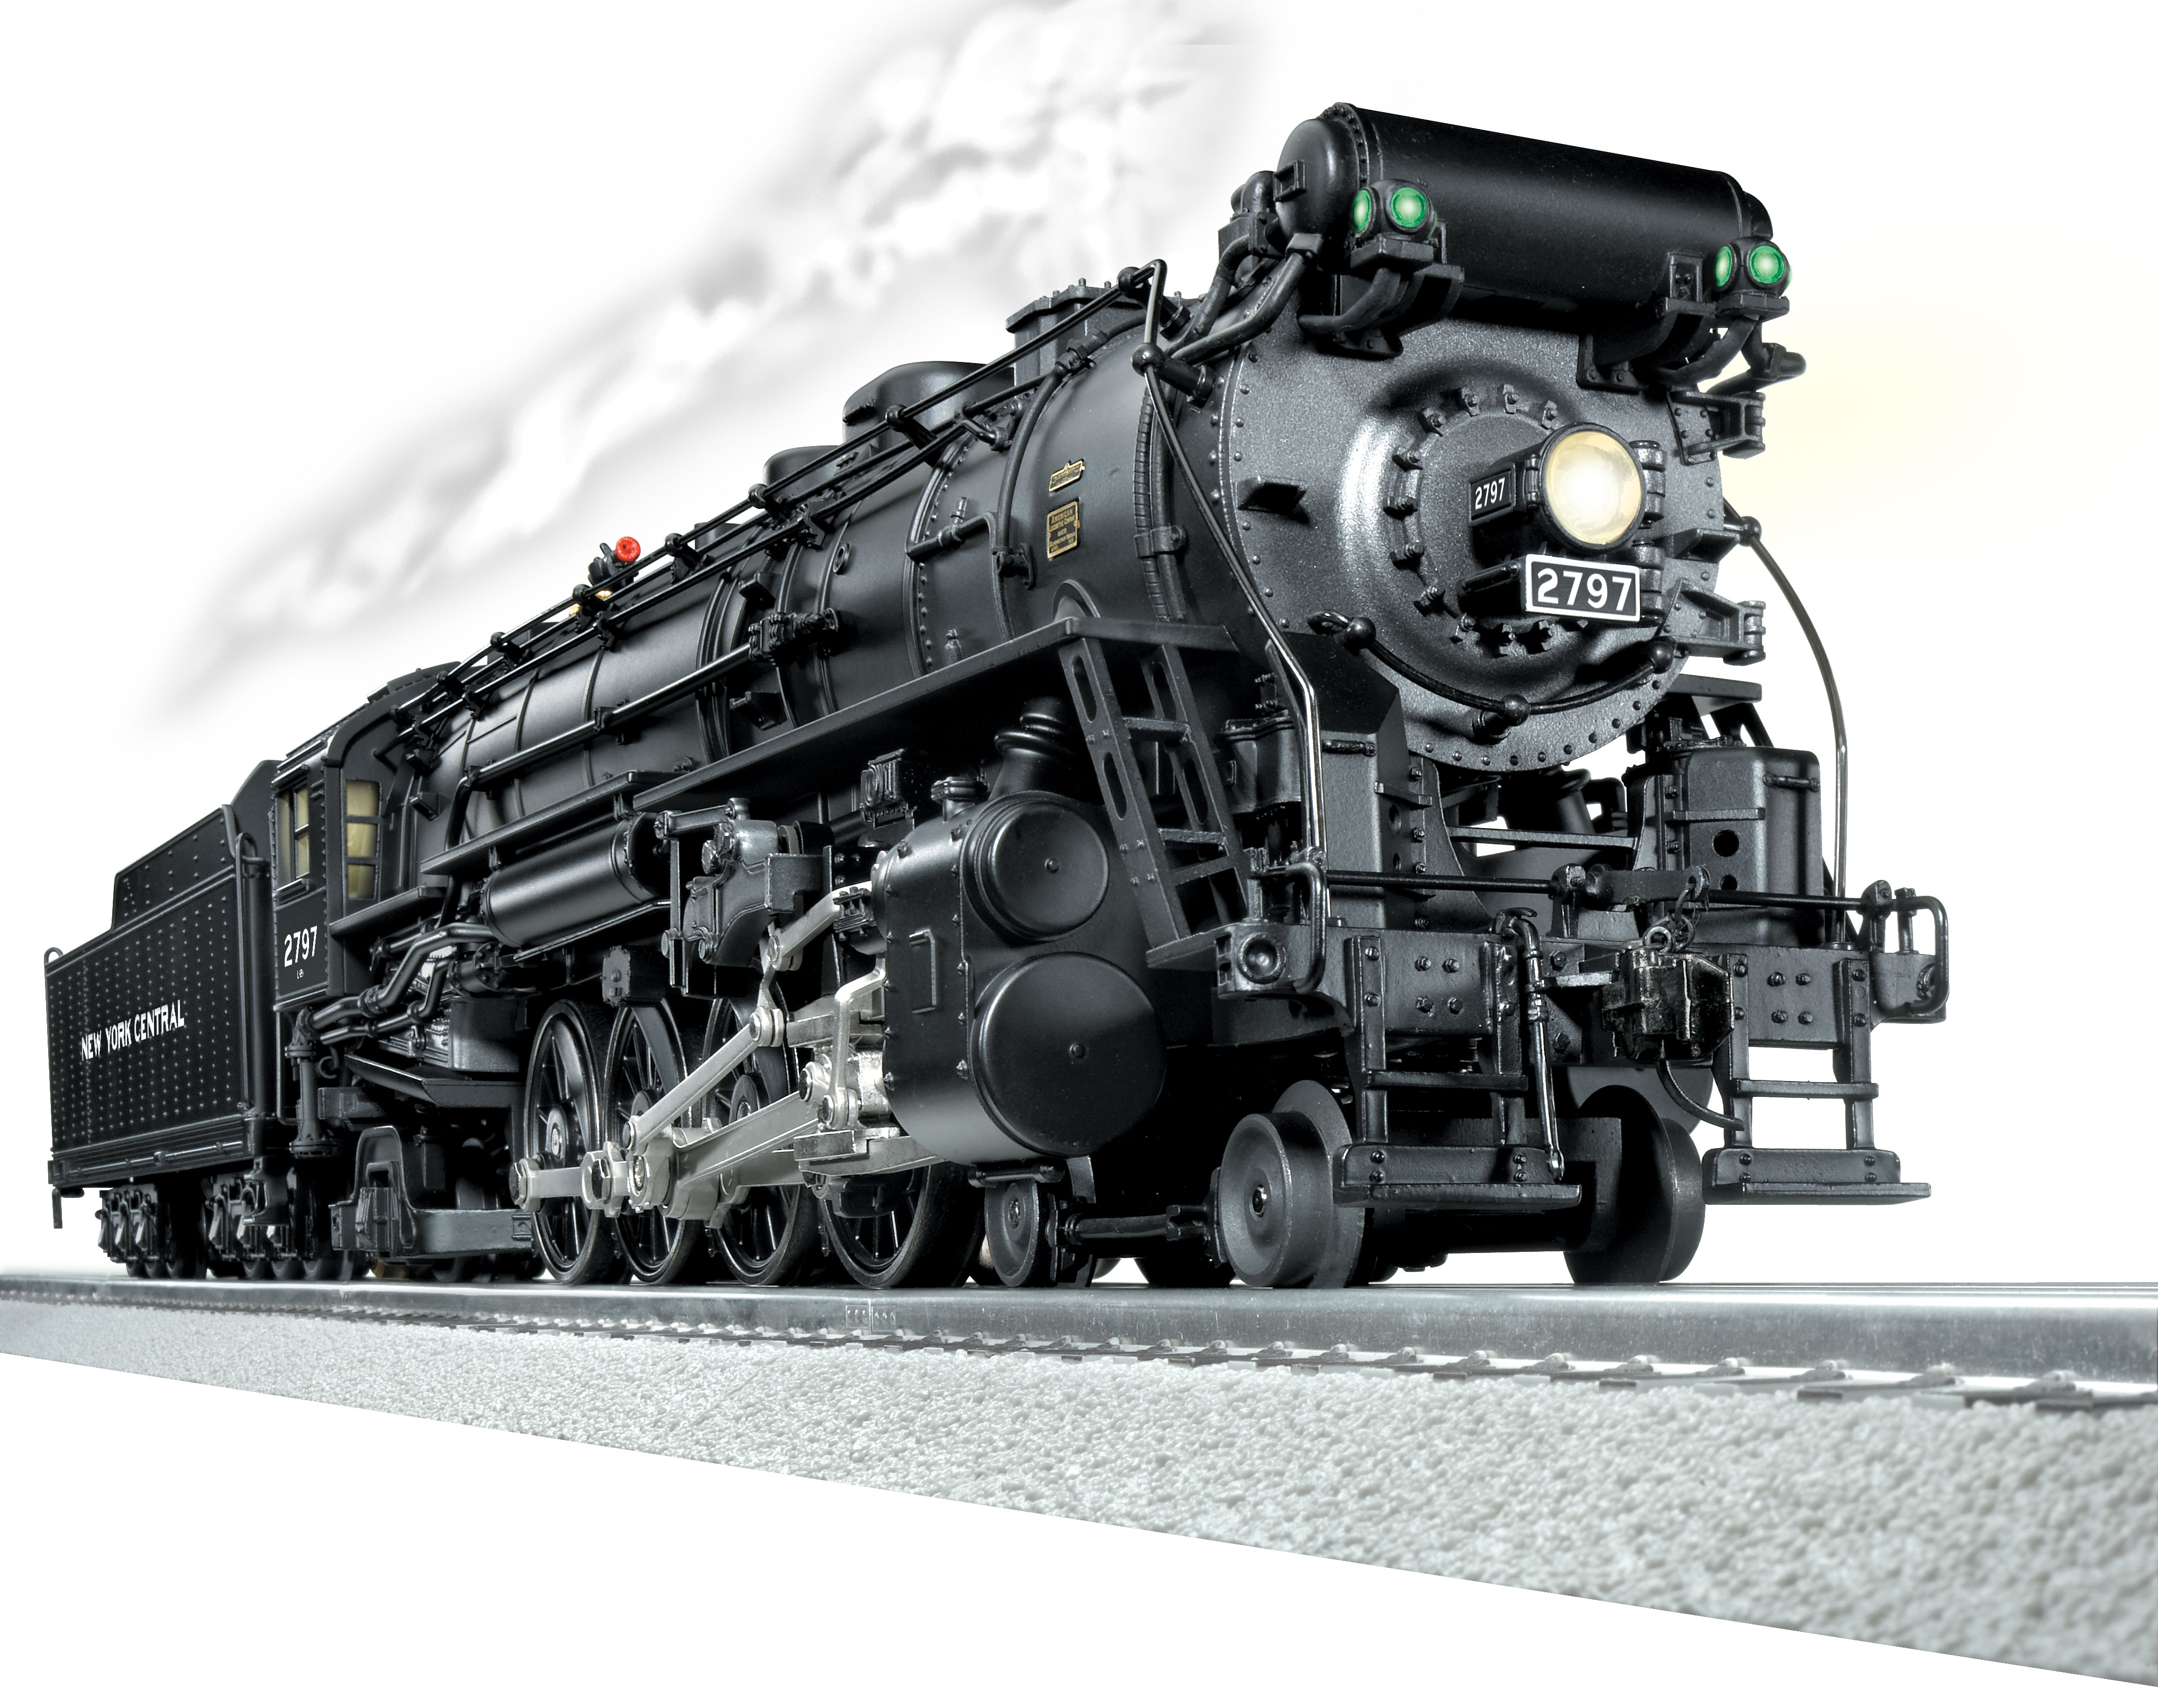 6 11412 mohawkdramaflt?w=300&h=237 new products lionel trains  at fashall.co